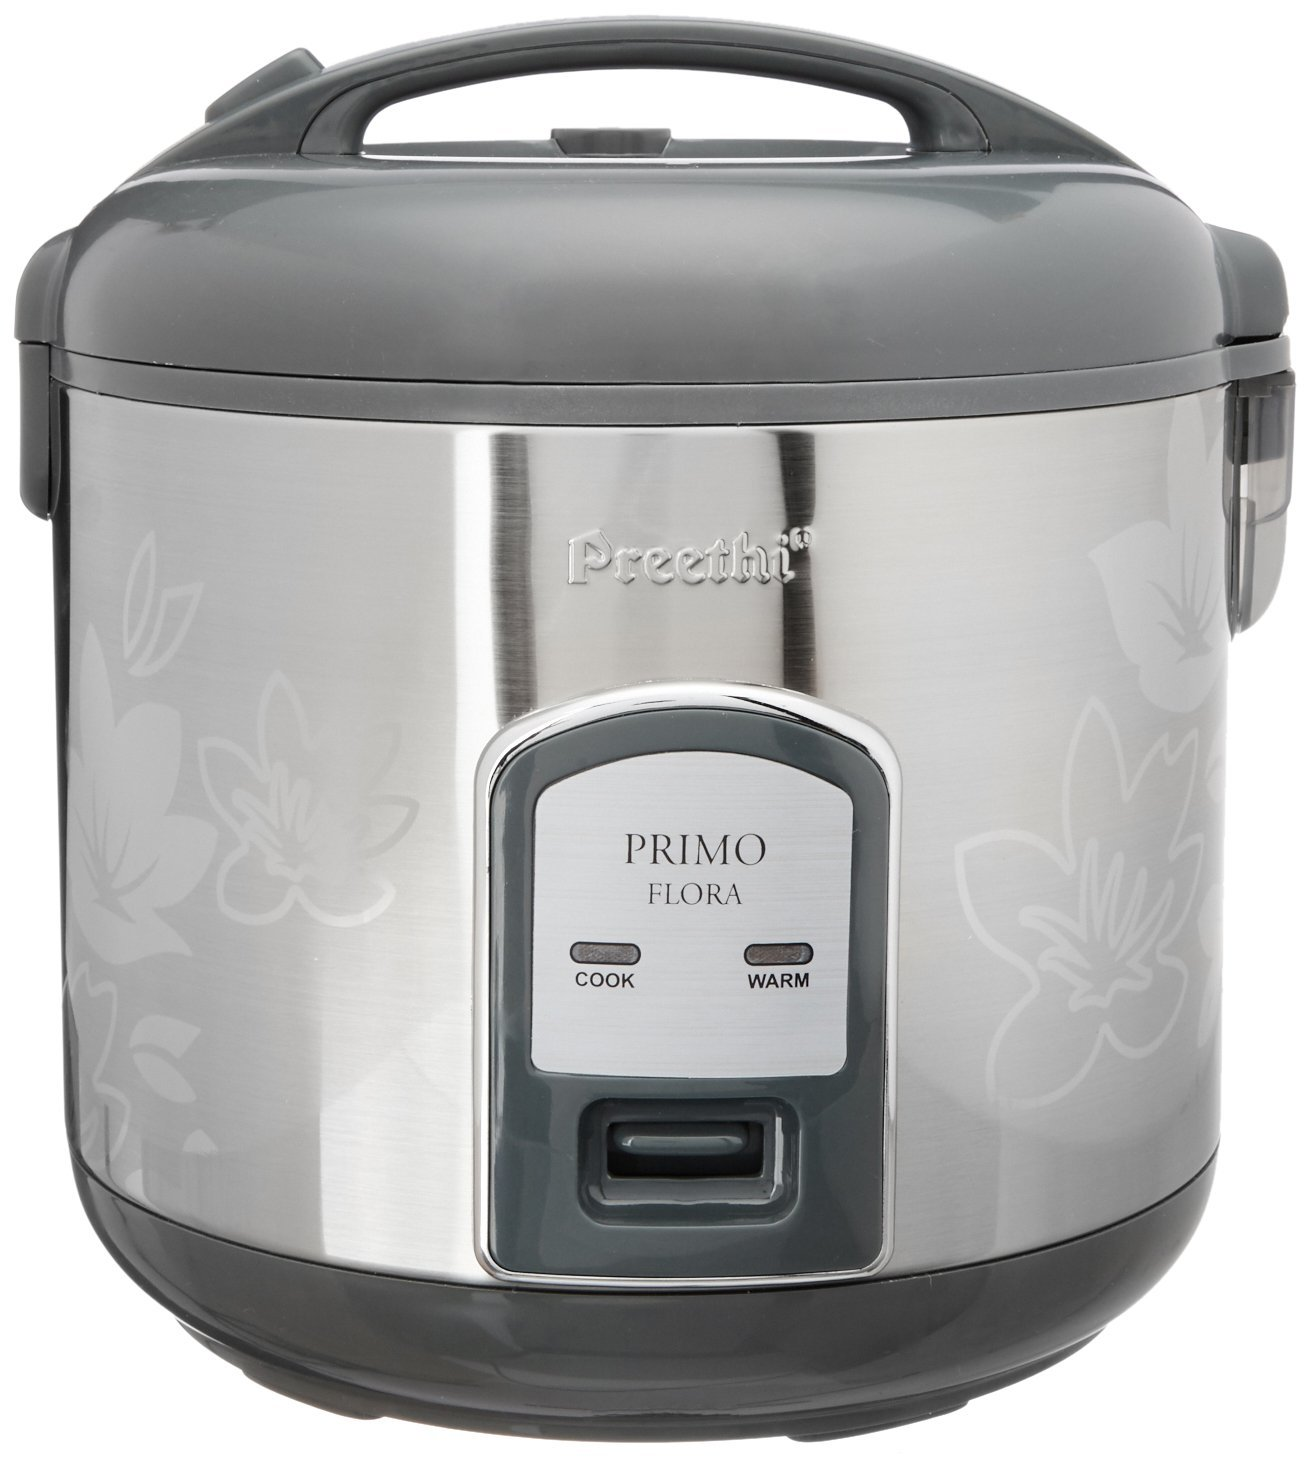 Buy Preethi Primo Rc 311 P18 Flora 18 Litre 700 Watts Rice Cooker Wiring Diagram Online At Low Prices In India